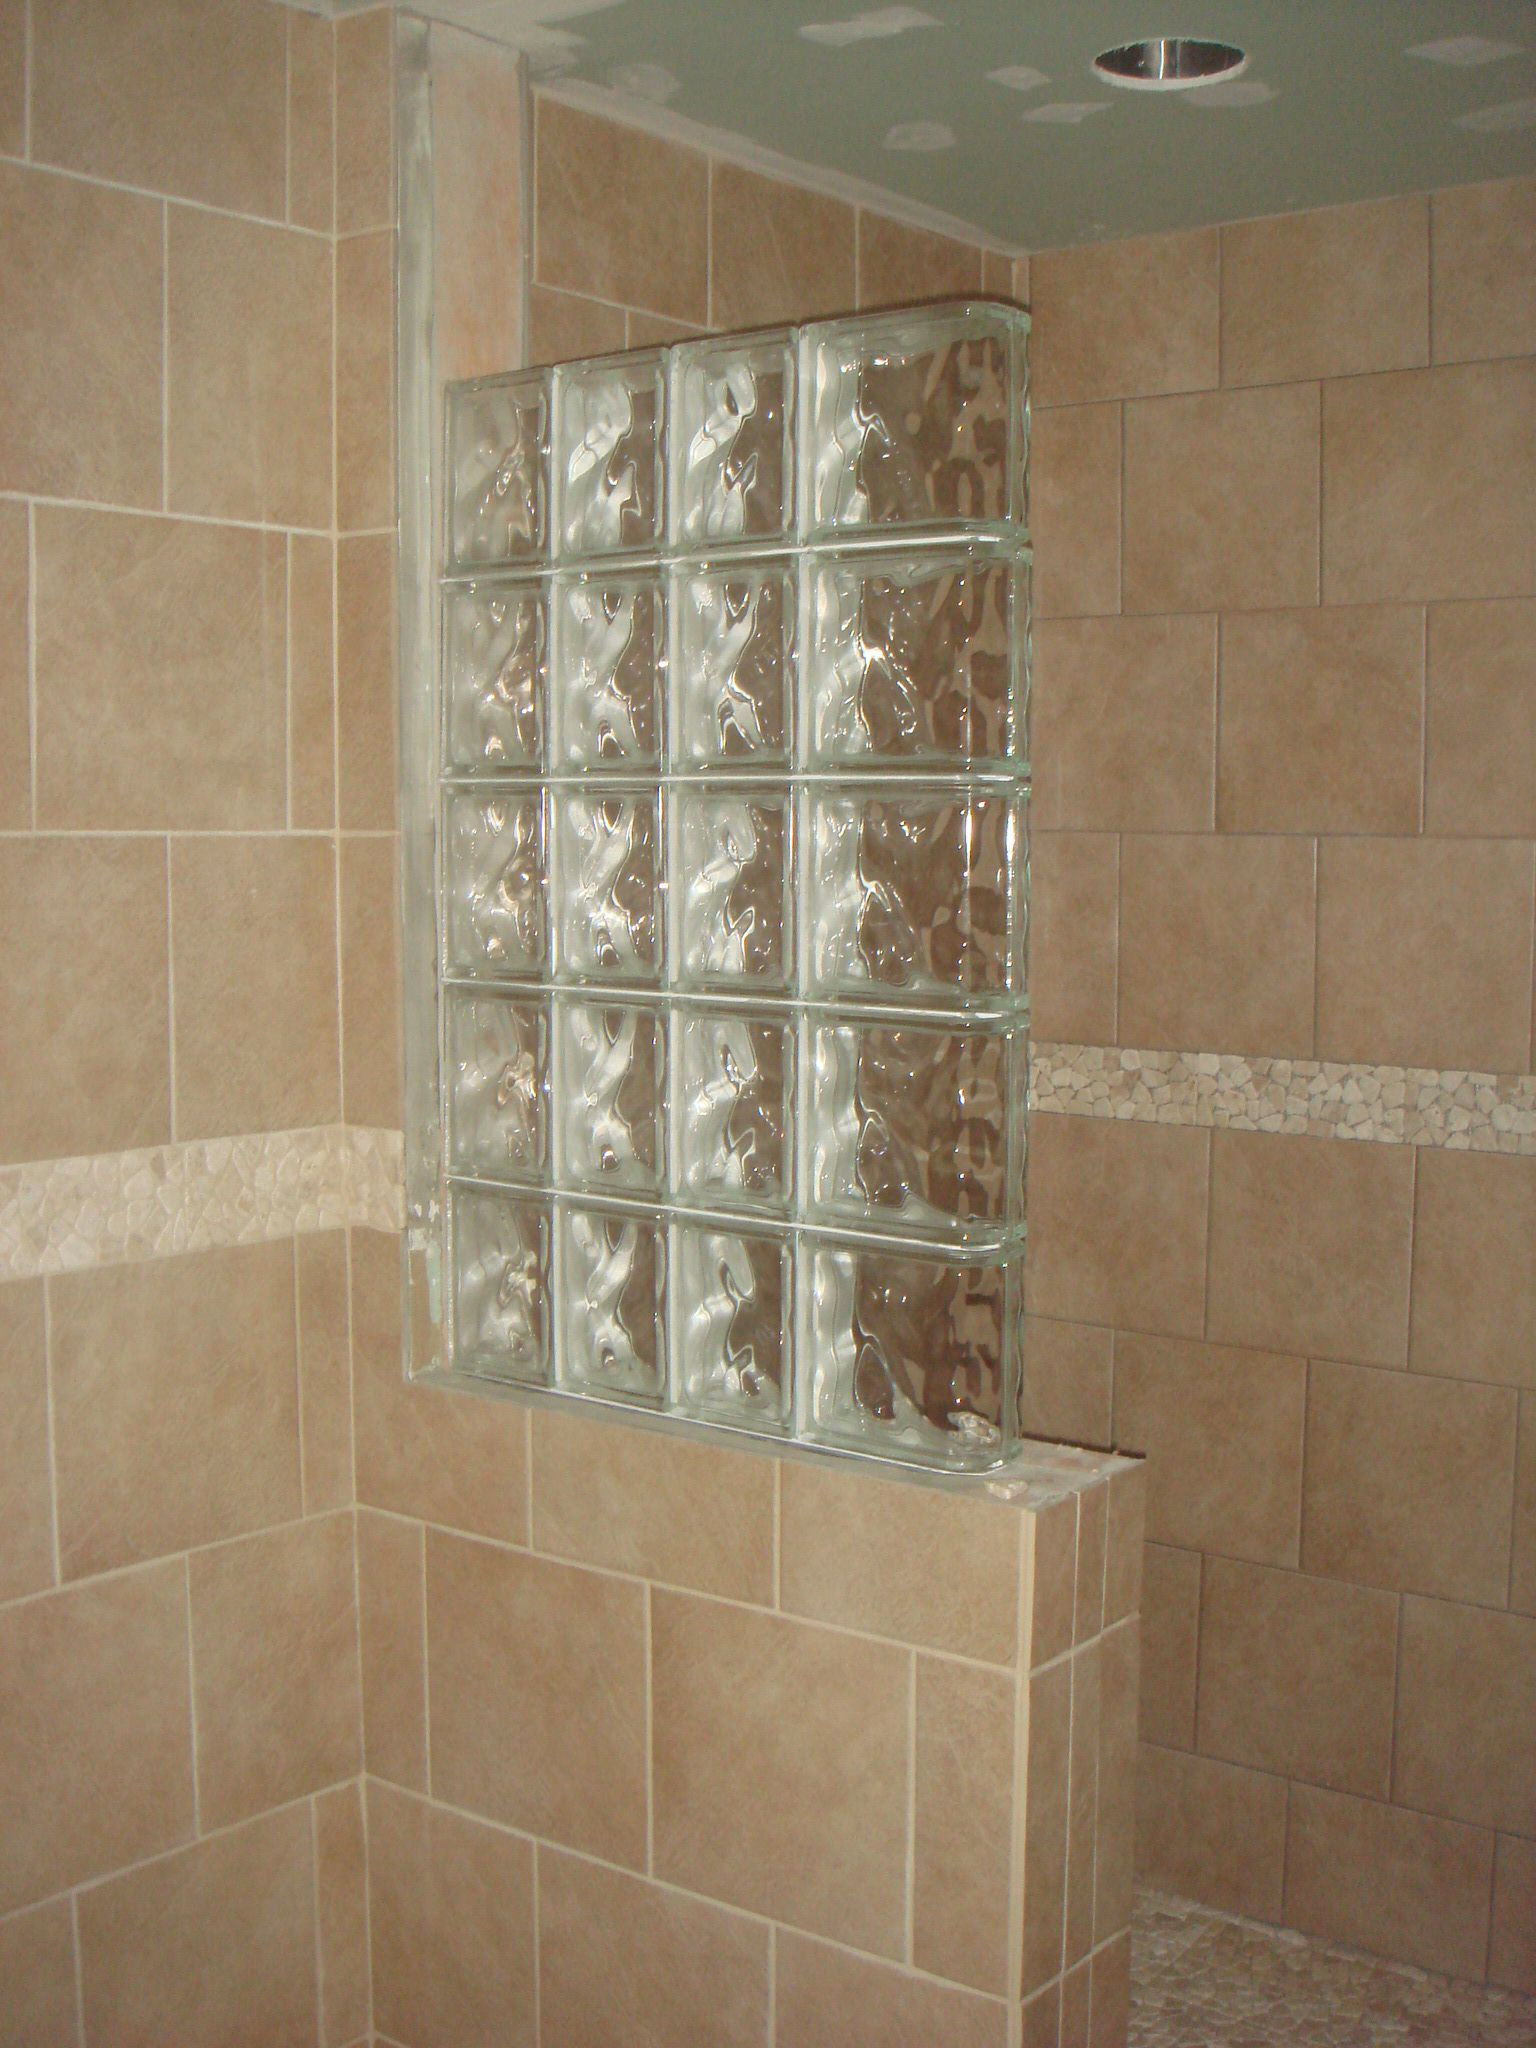 Half Wall Shower Design An Addition Some Glass Block Wall